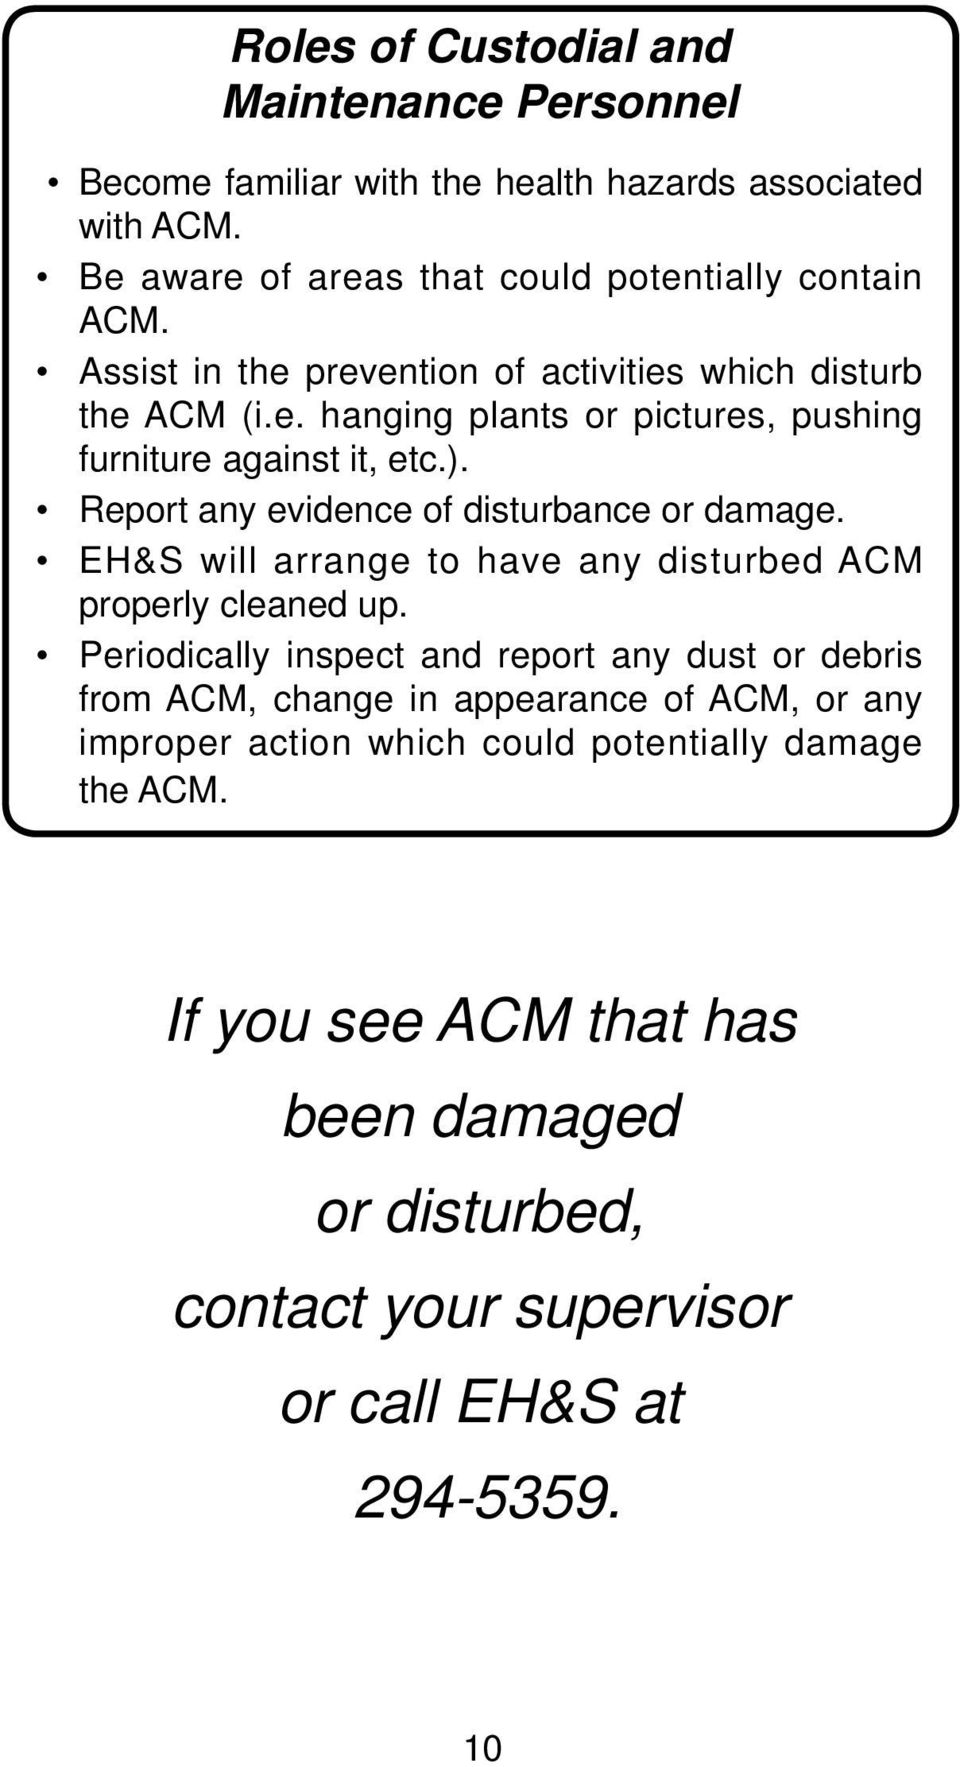 Report any evidence of disturbance or damage. EH&S will arrange to have any disturbed ACM properly cleaned up.